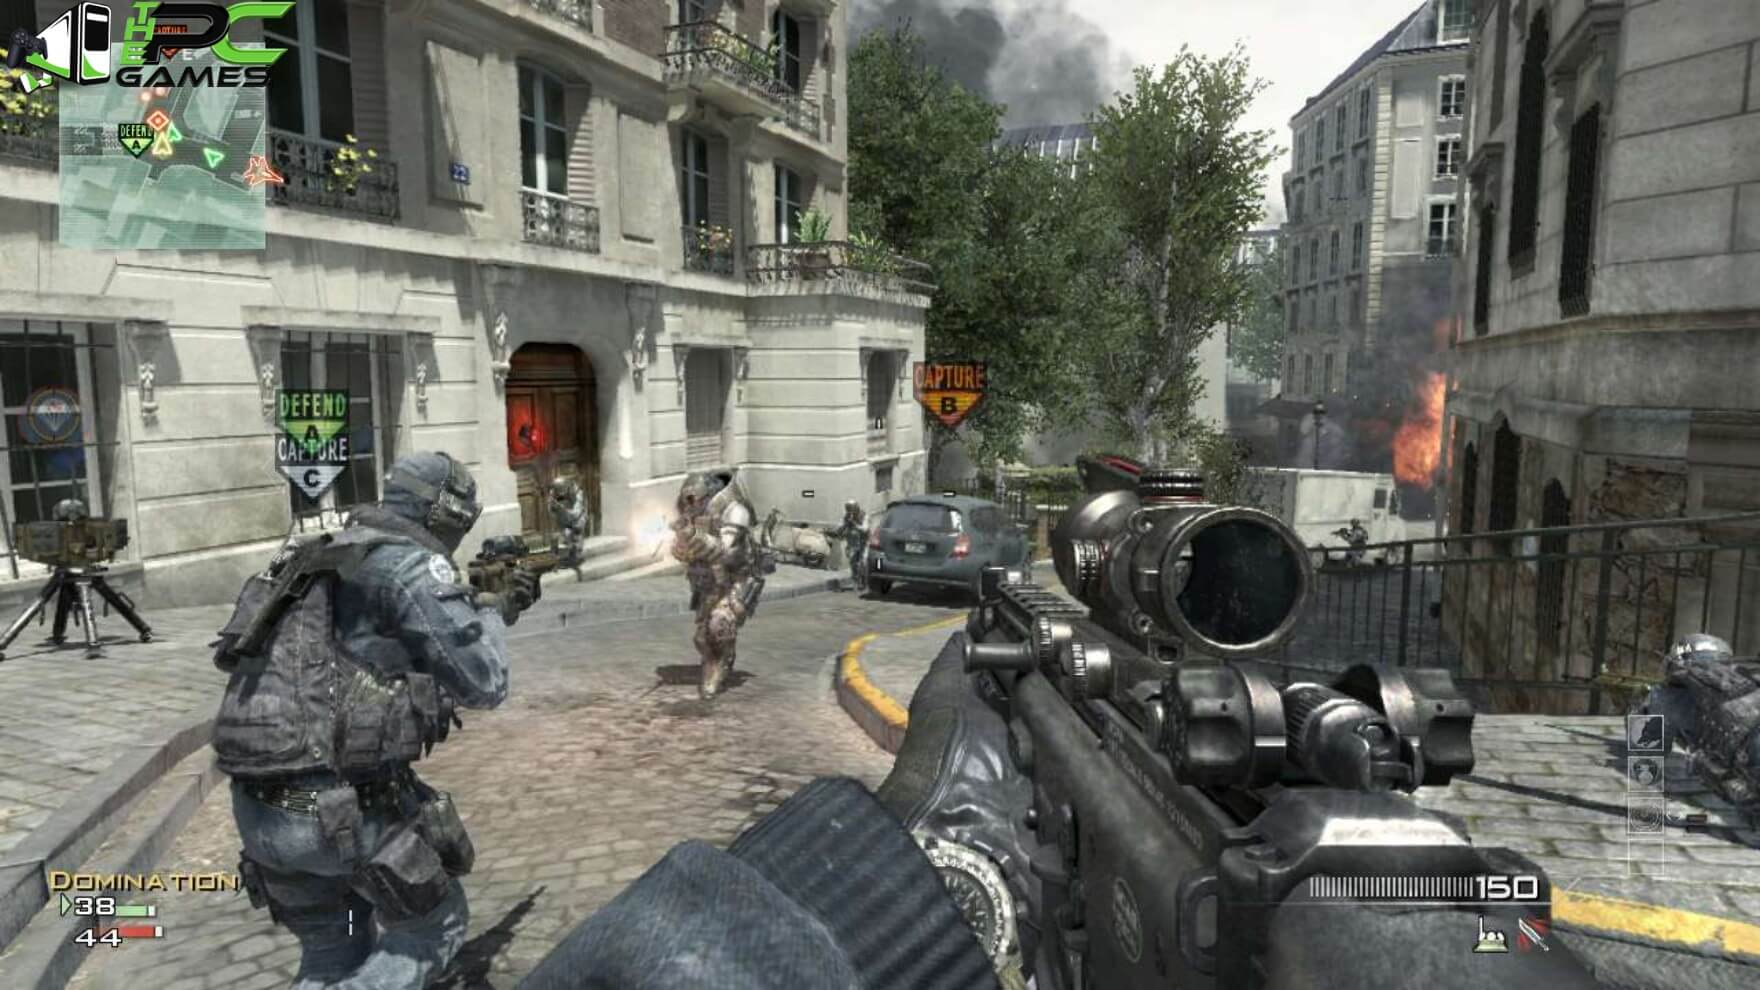 call of duty modern warfare 3 free download with multiplayer